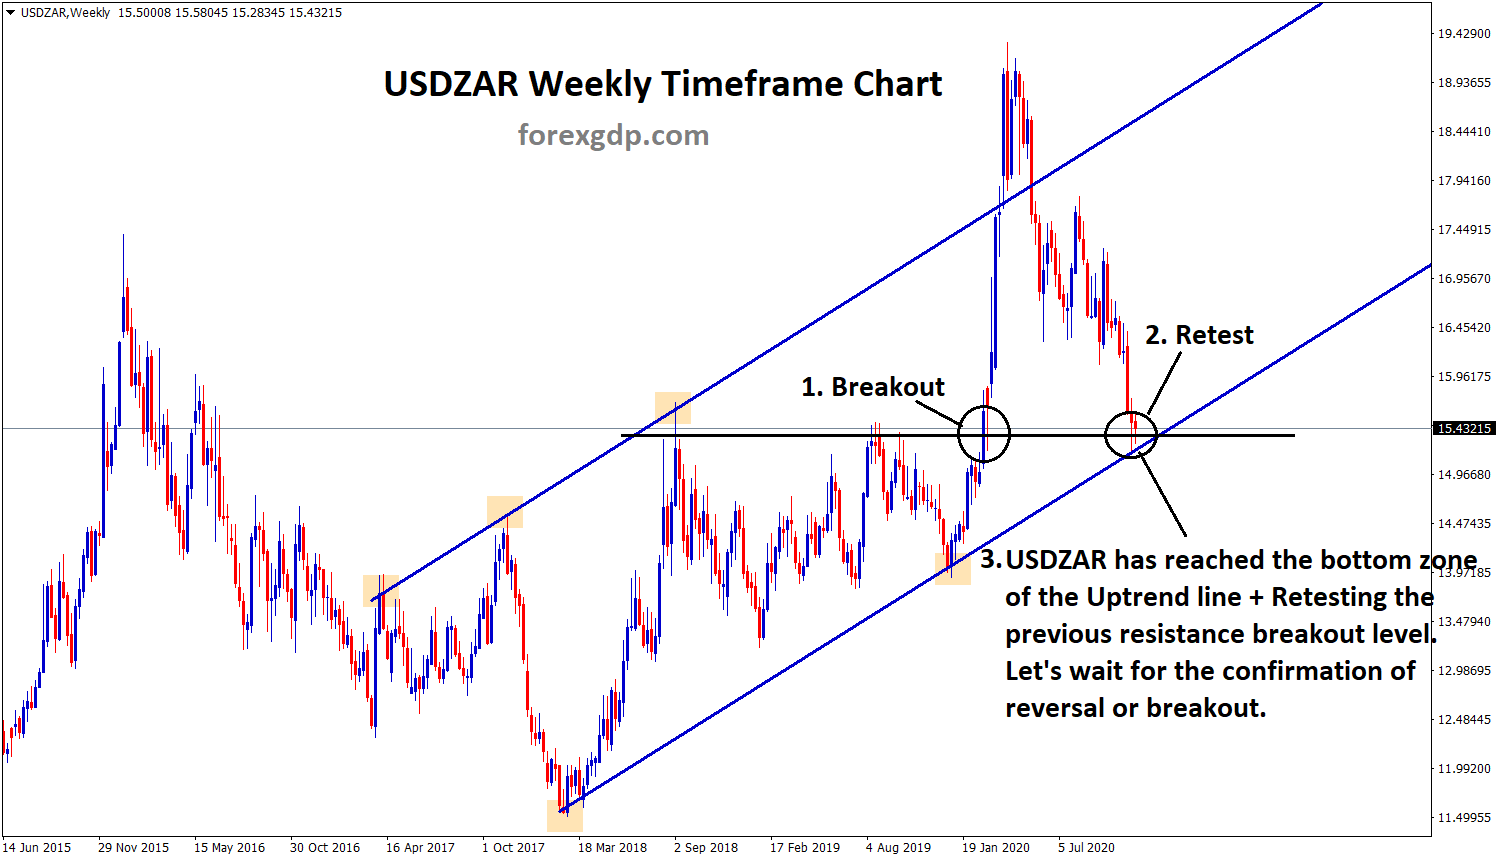 USDZAR reached the bottom of uptrend retesting breakout level 1